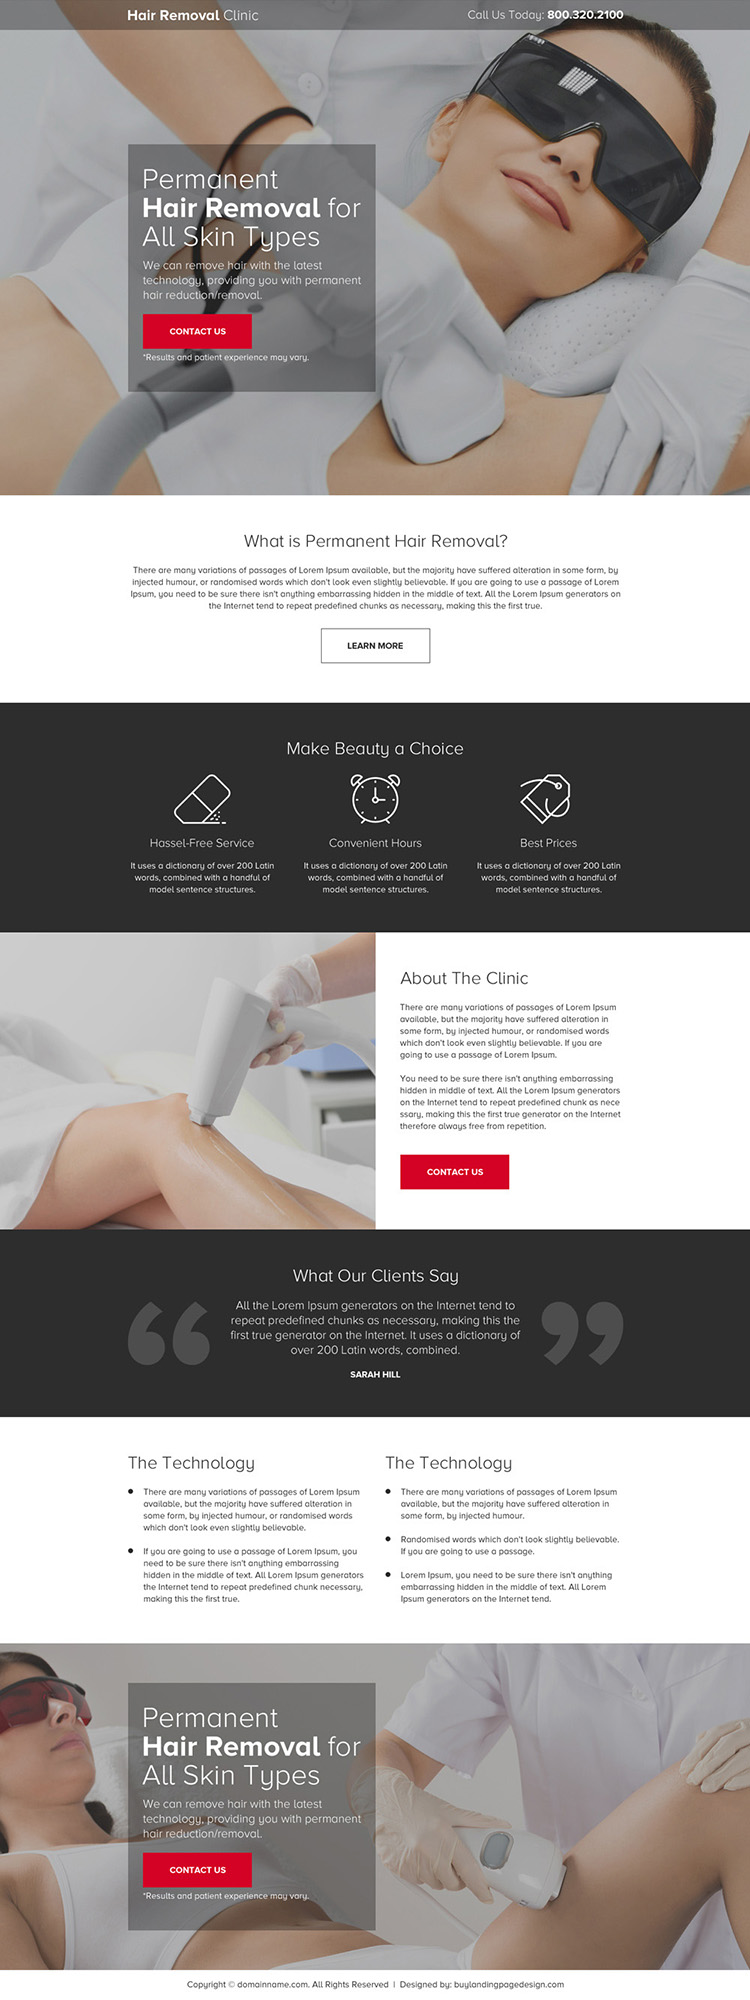 hair removal clinic responsive landing page design